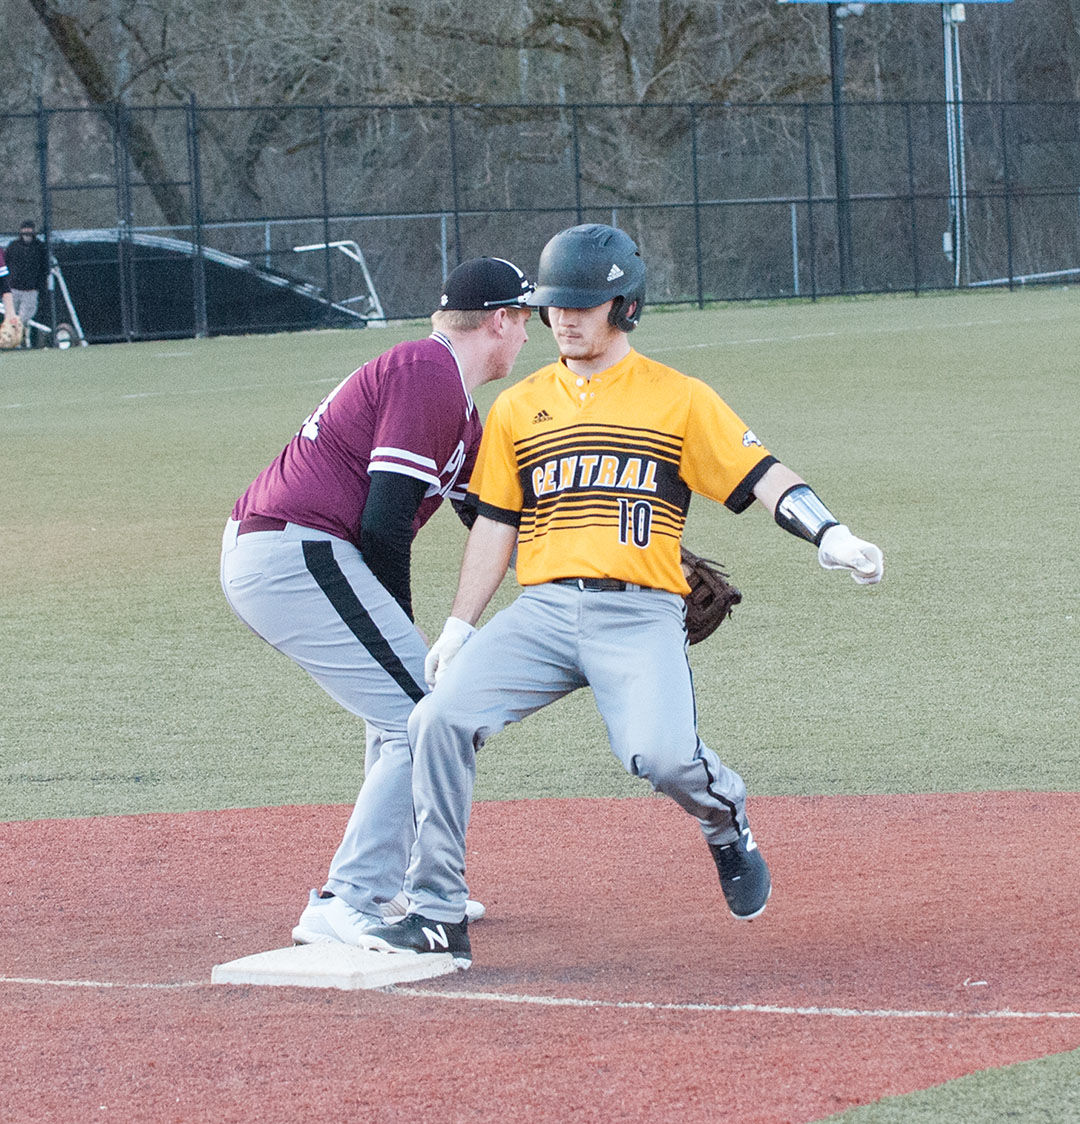 Golden Eagles open season with win over Panthers